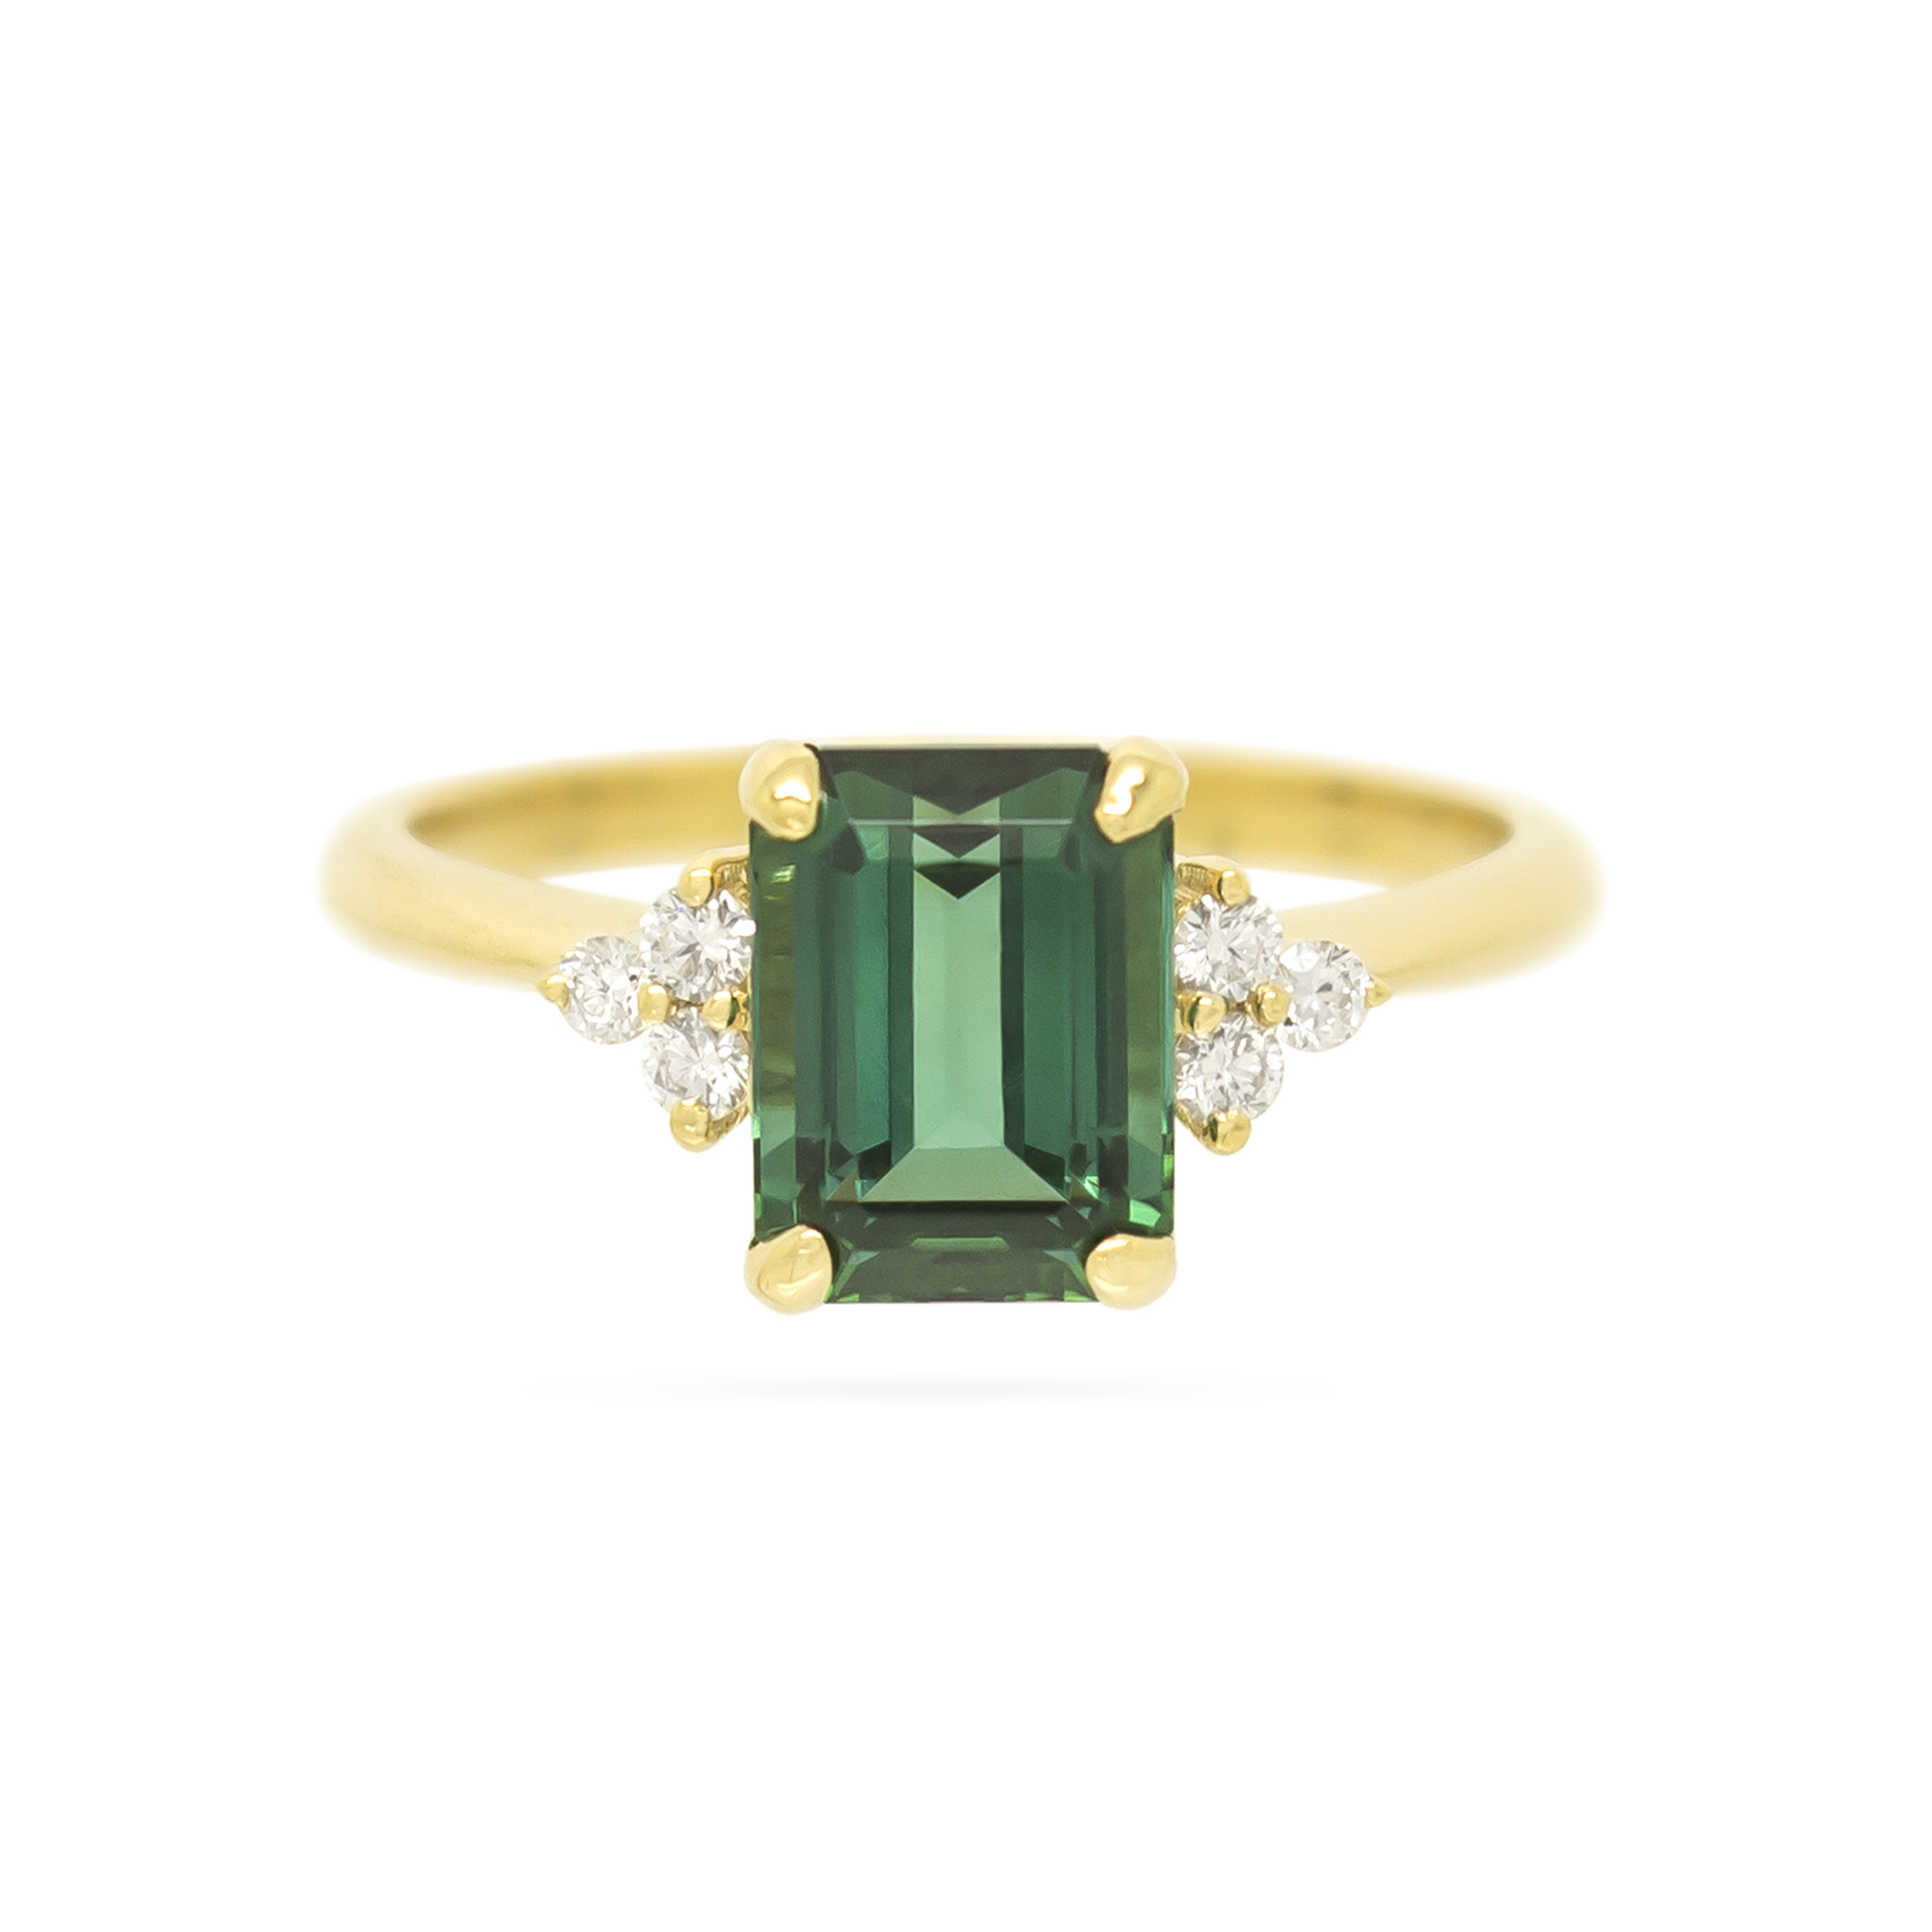 Lagoon Tourmaline Ring